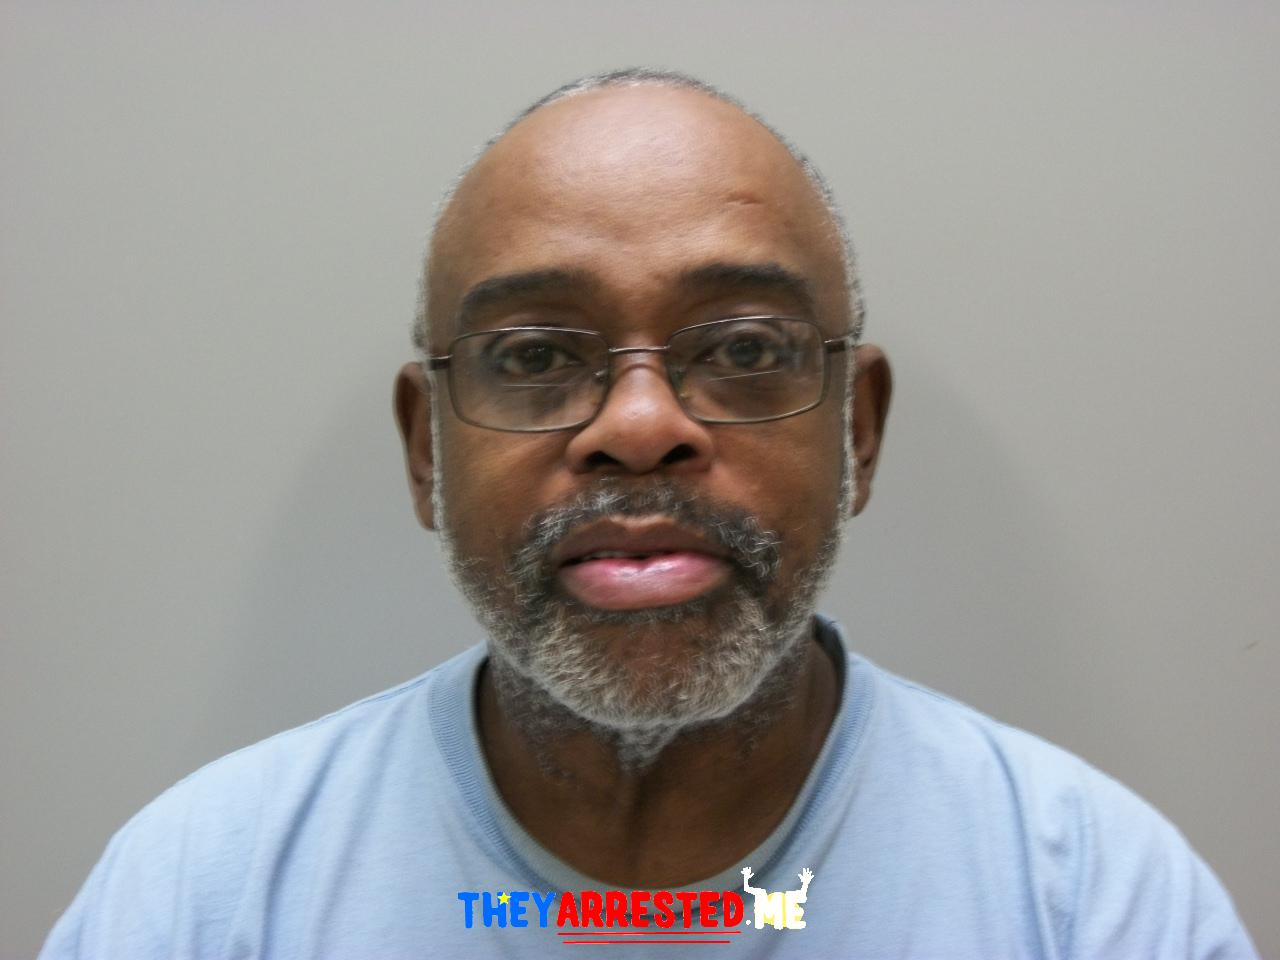 GREGORY-MASHAWN-SEAY (WCSO)